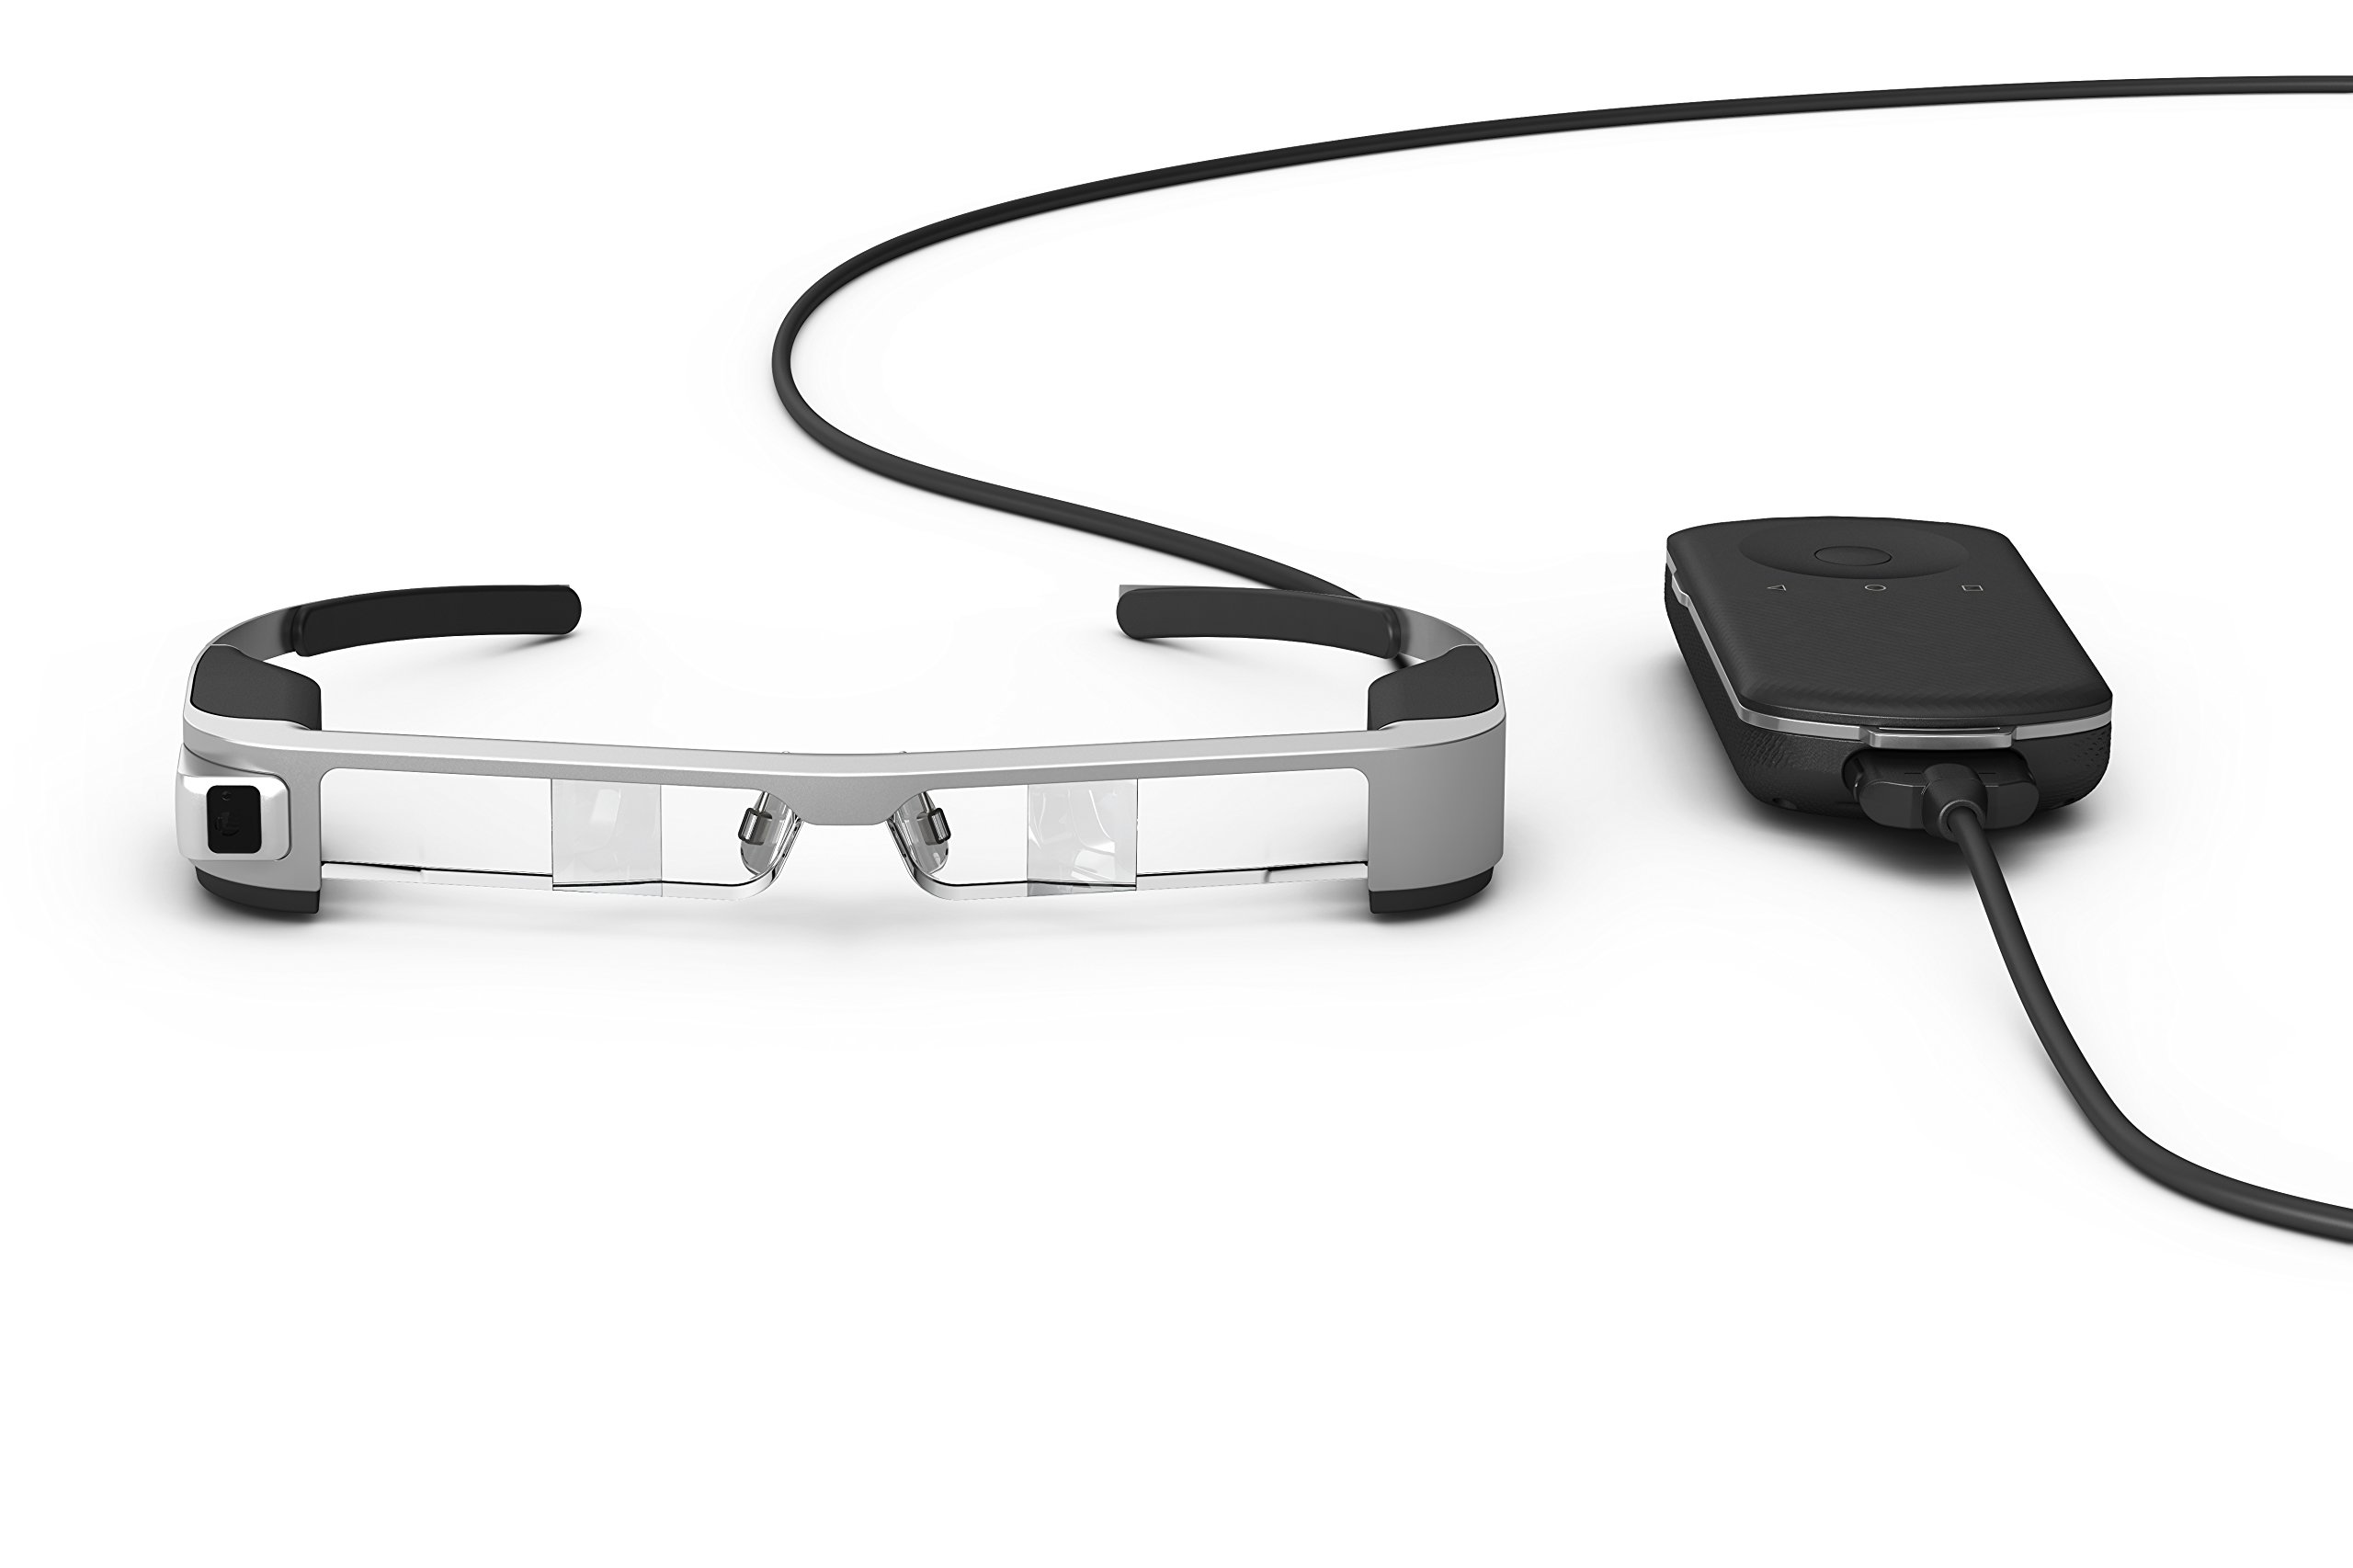 71kSt636%2BVL - Epson Moverio BT-300 - Augmented Reality Glasses with an OLED Display